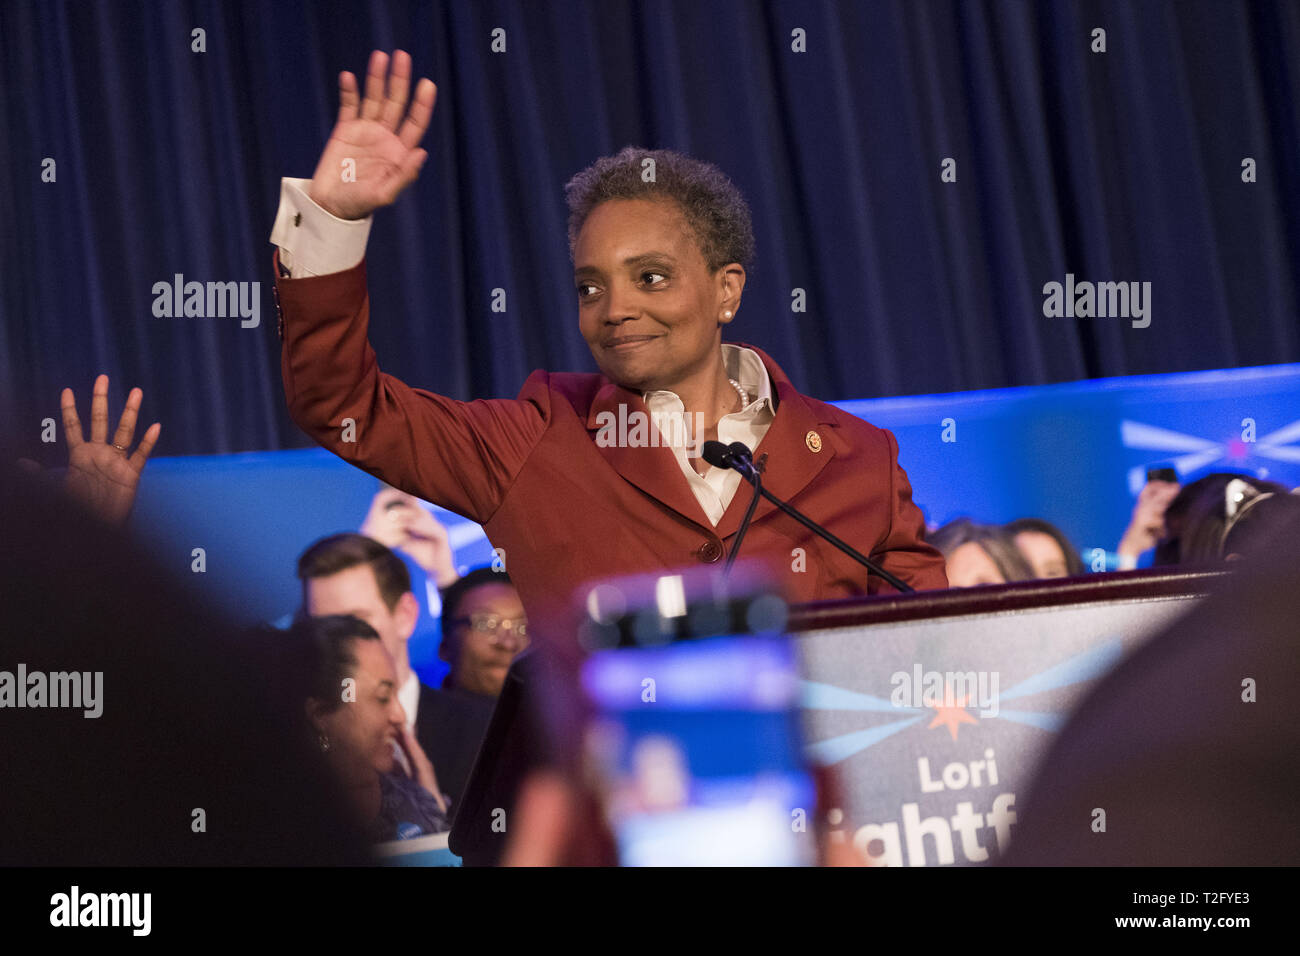 Chicago, Illinois, USA. 2ème apr 2019. Élu maire LORI LIGHTFOOT donnant son discours à prend en charge à l'hôtel Hilton de Chicago. Mme Lightfoot est Chicagos premier maire femmes afro-américaines. Credit : Rick Majewski/ZUMA/Alamy Fil Live News Photo Stock